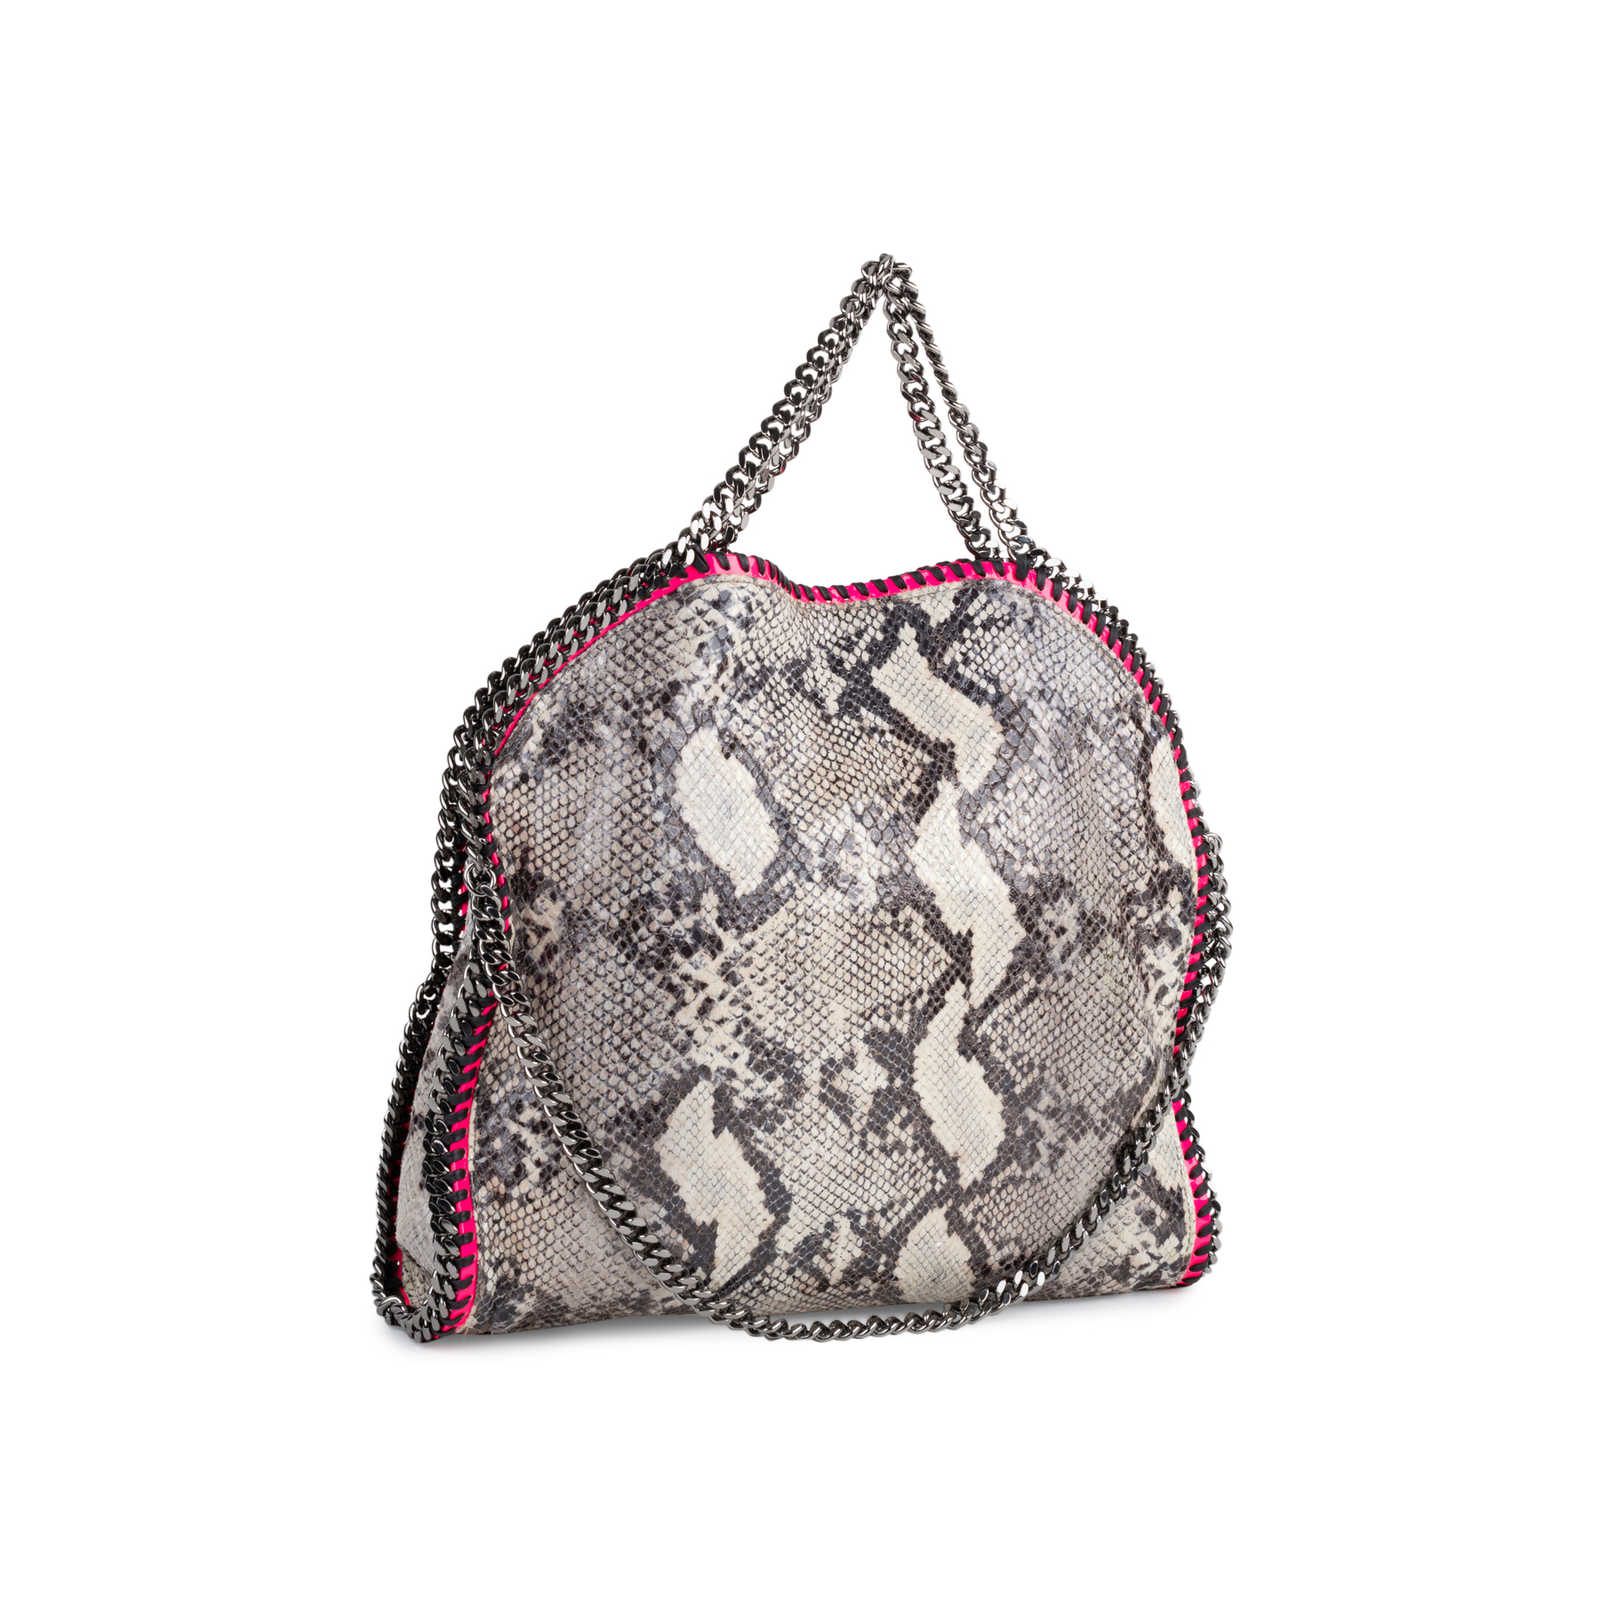 682de5ae9dc1 ... Authentic Second Hand Stella McCartney Falabella Faux Python Tote  (PSS-552-00020) ...